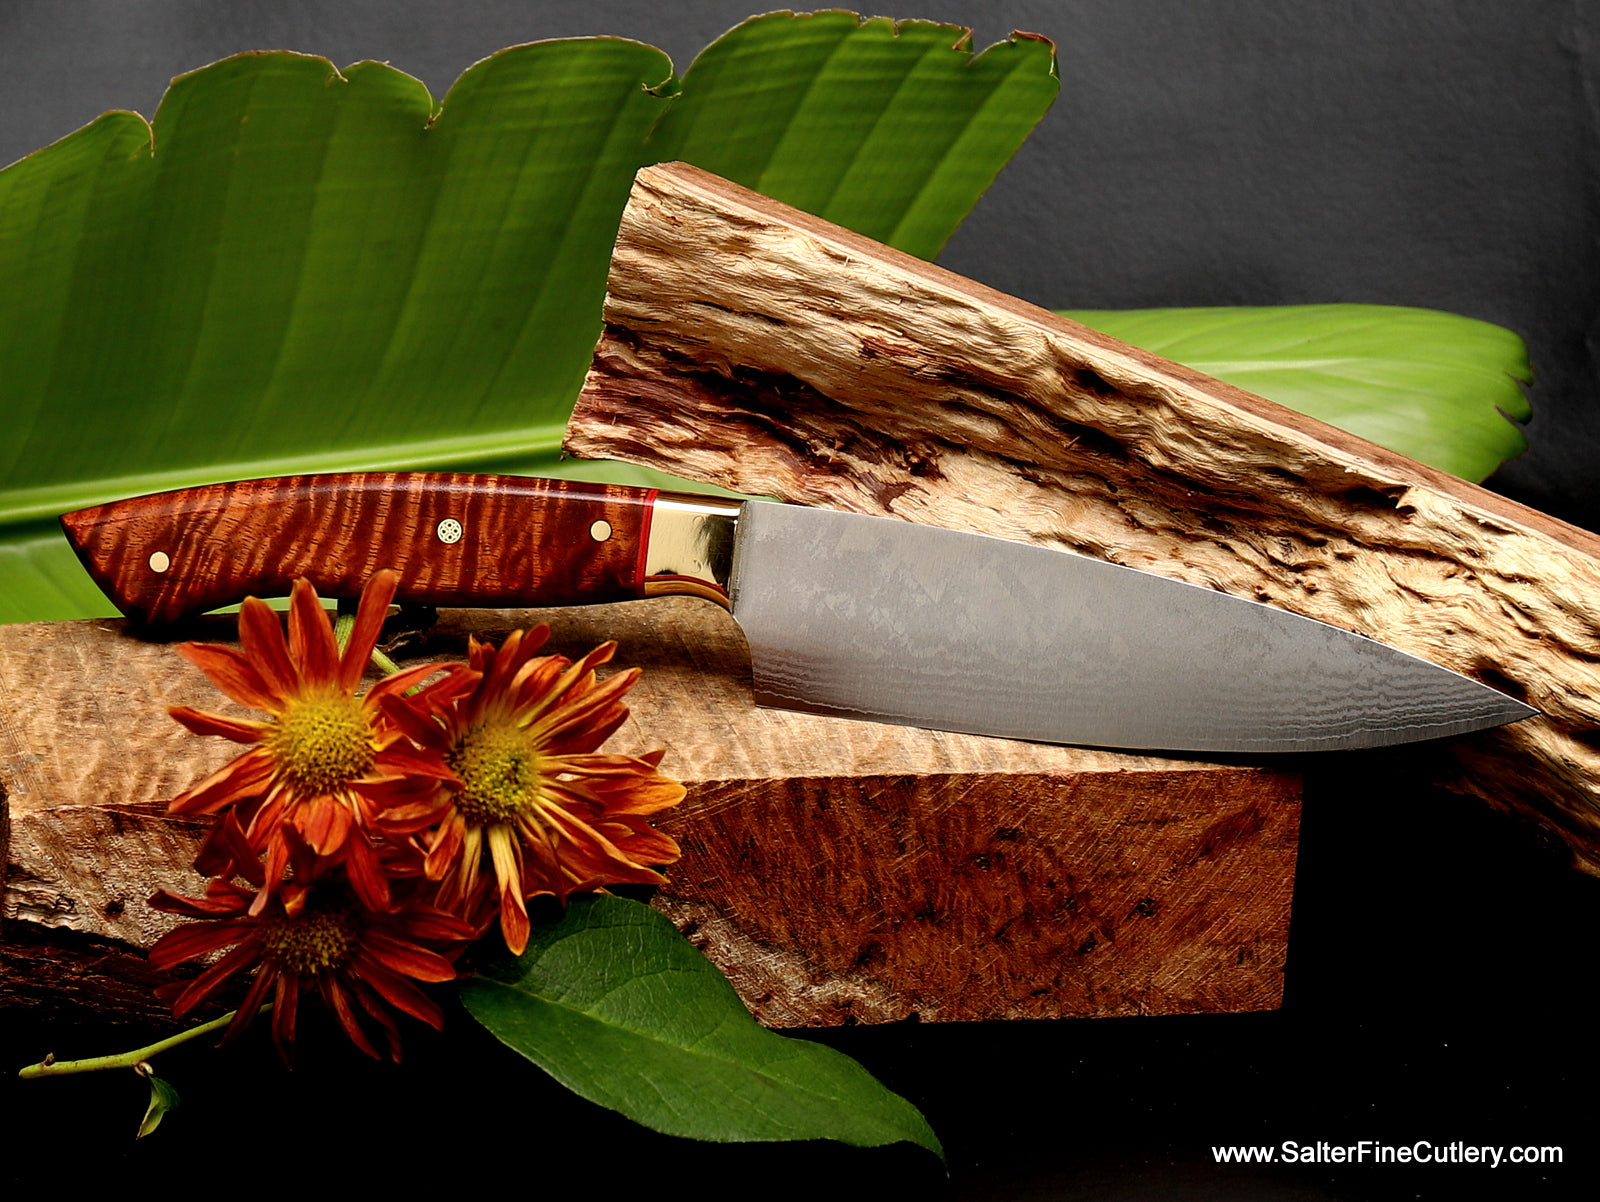 160mm chef knife with exotic curly koa wood handle handmade in Hawaii by Salter Fine Cutlery